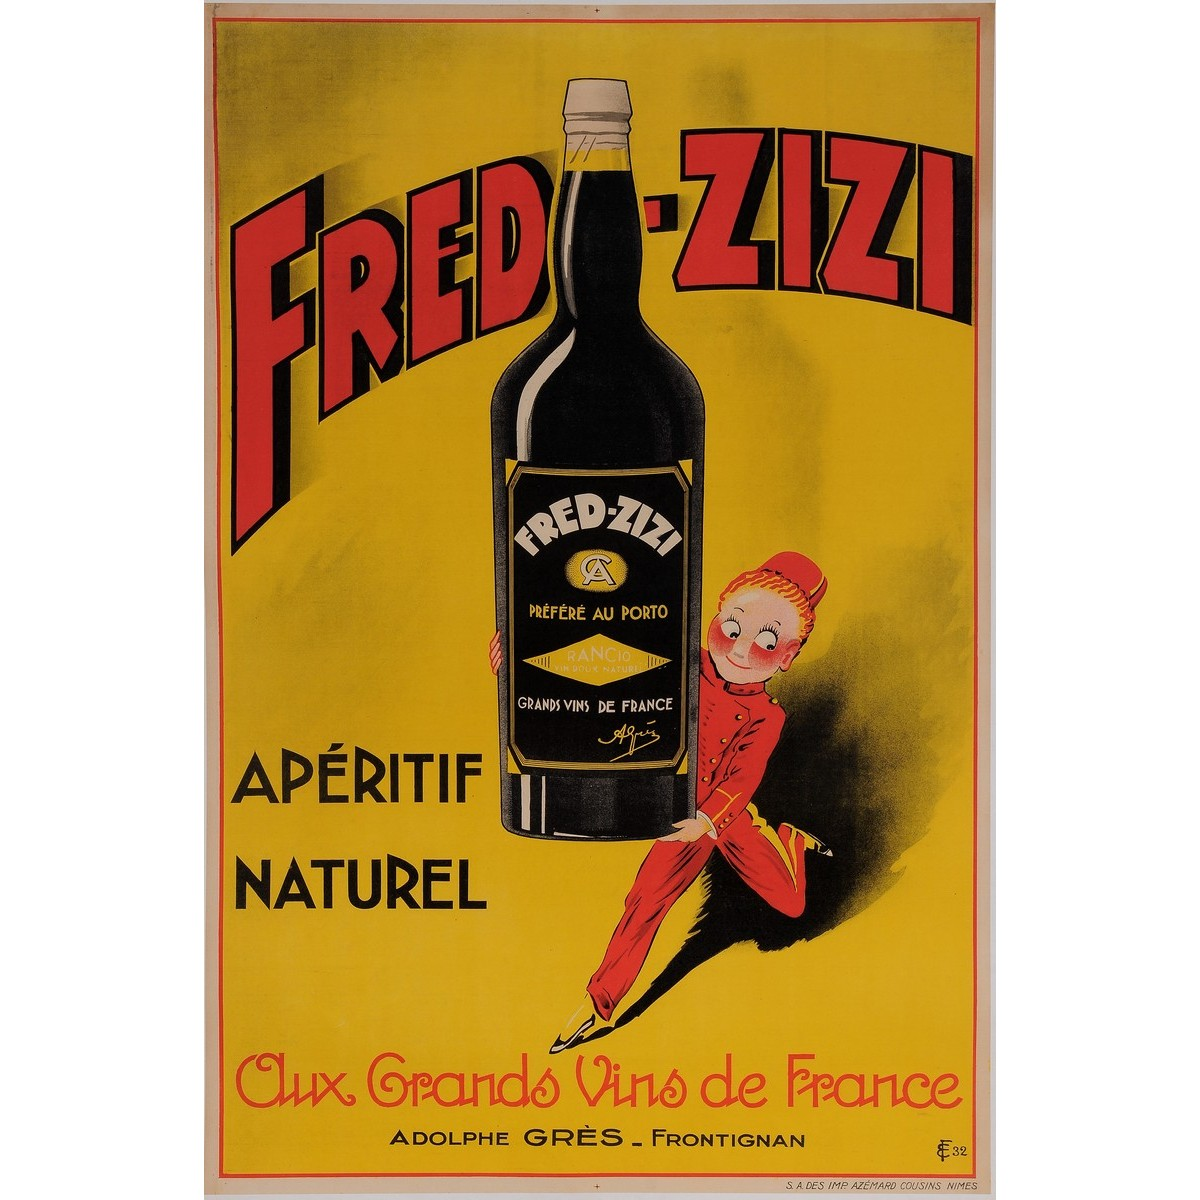 $500 00 - Original Vintage French Alcohol Poster Advertising